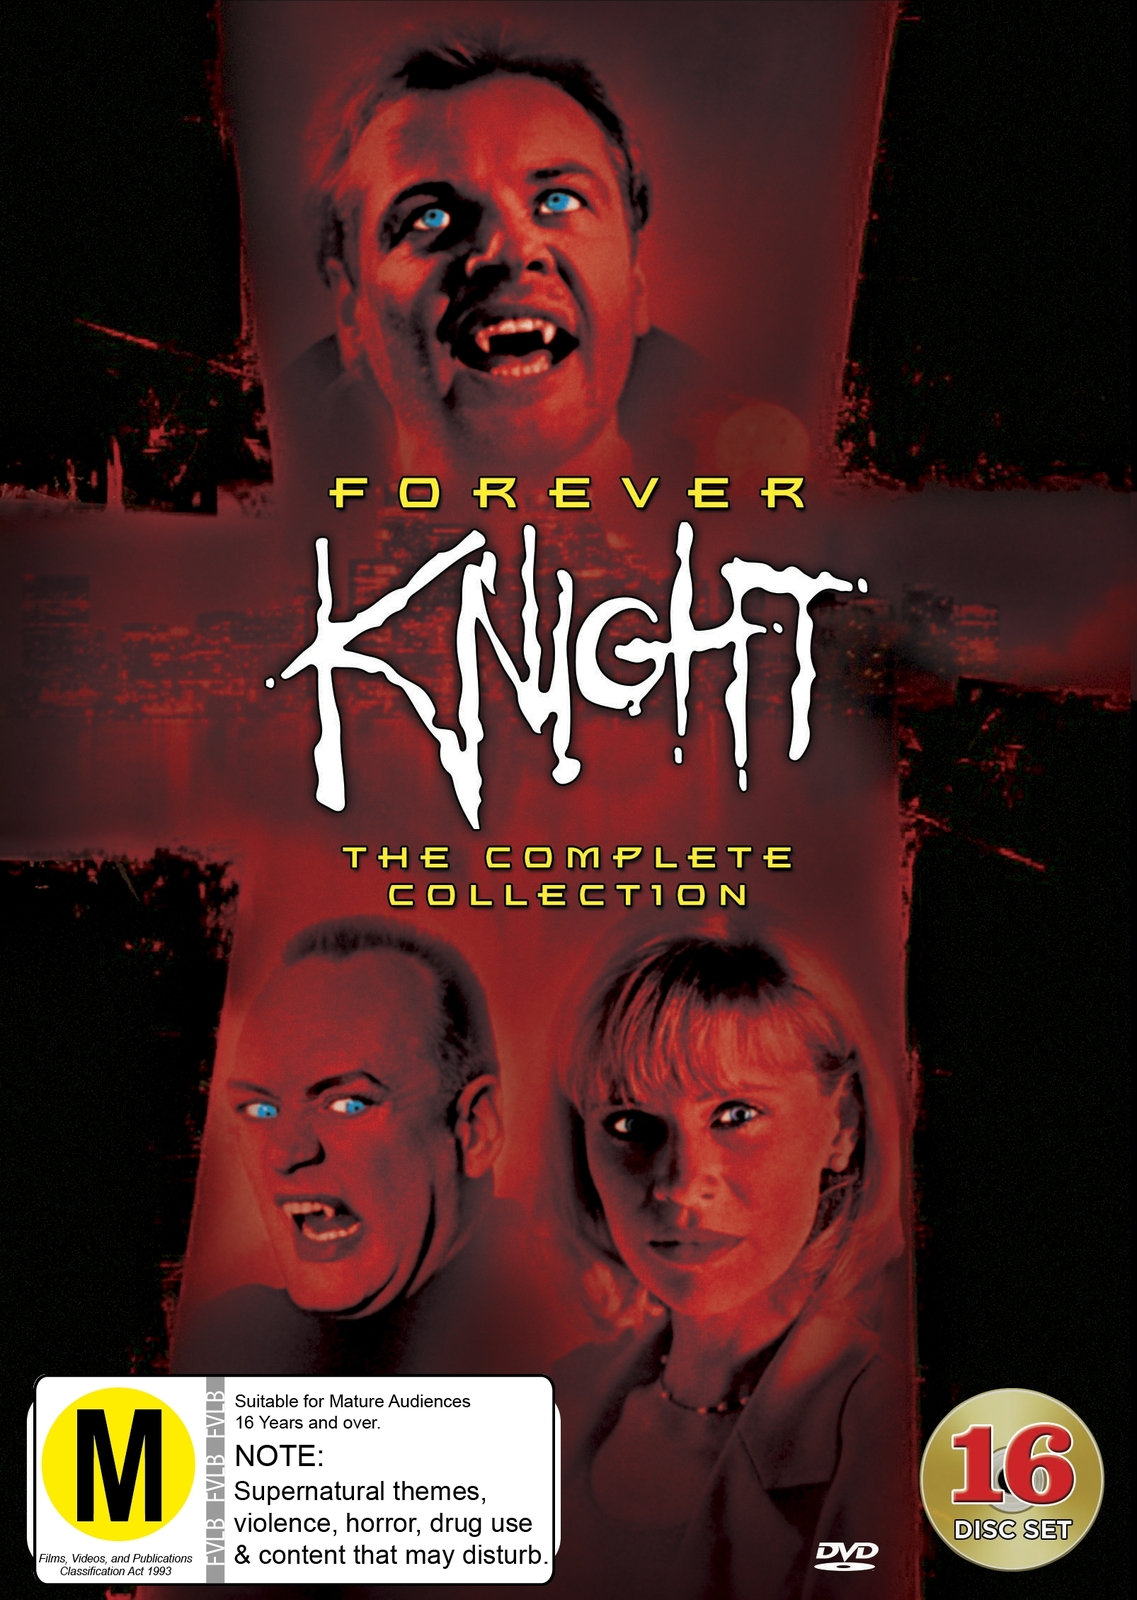 Forever Knight - The Complete Collection (16 Disc Set) on DVD image